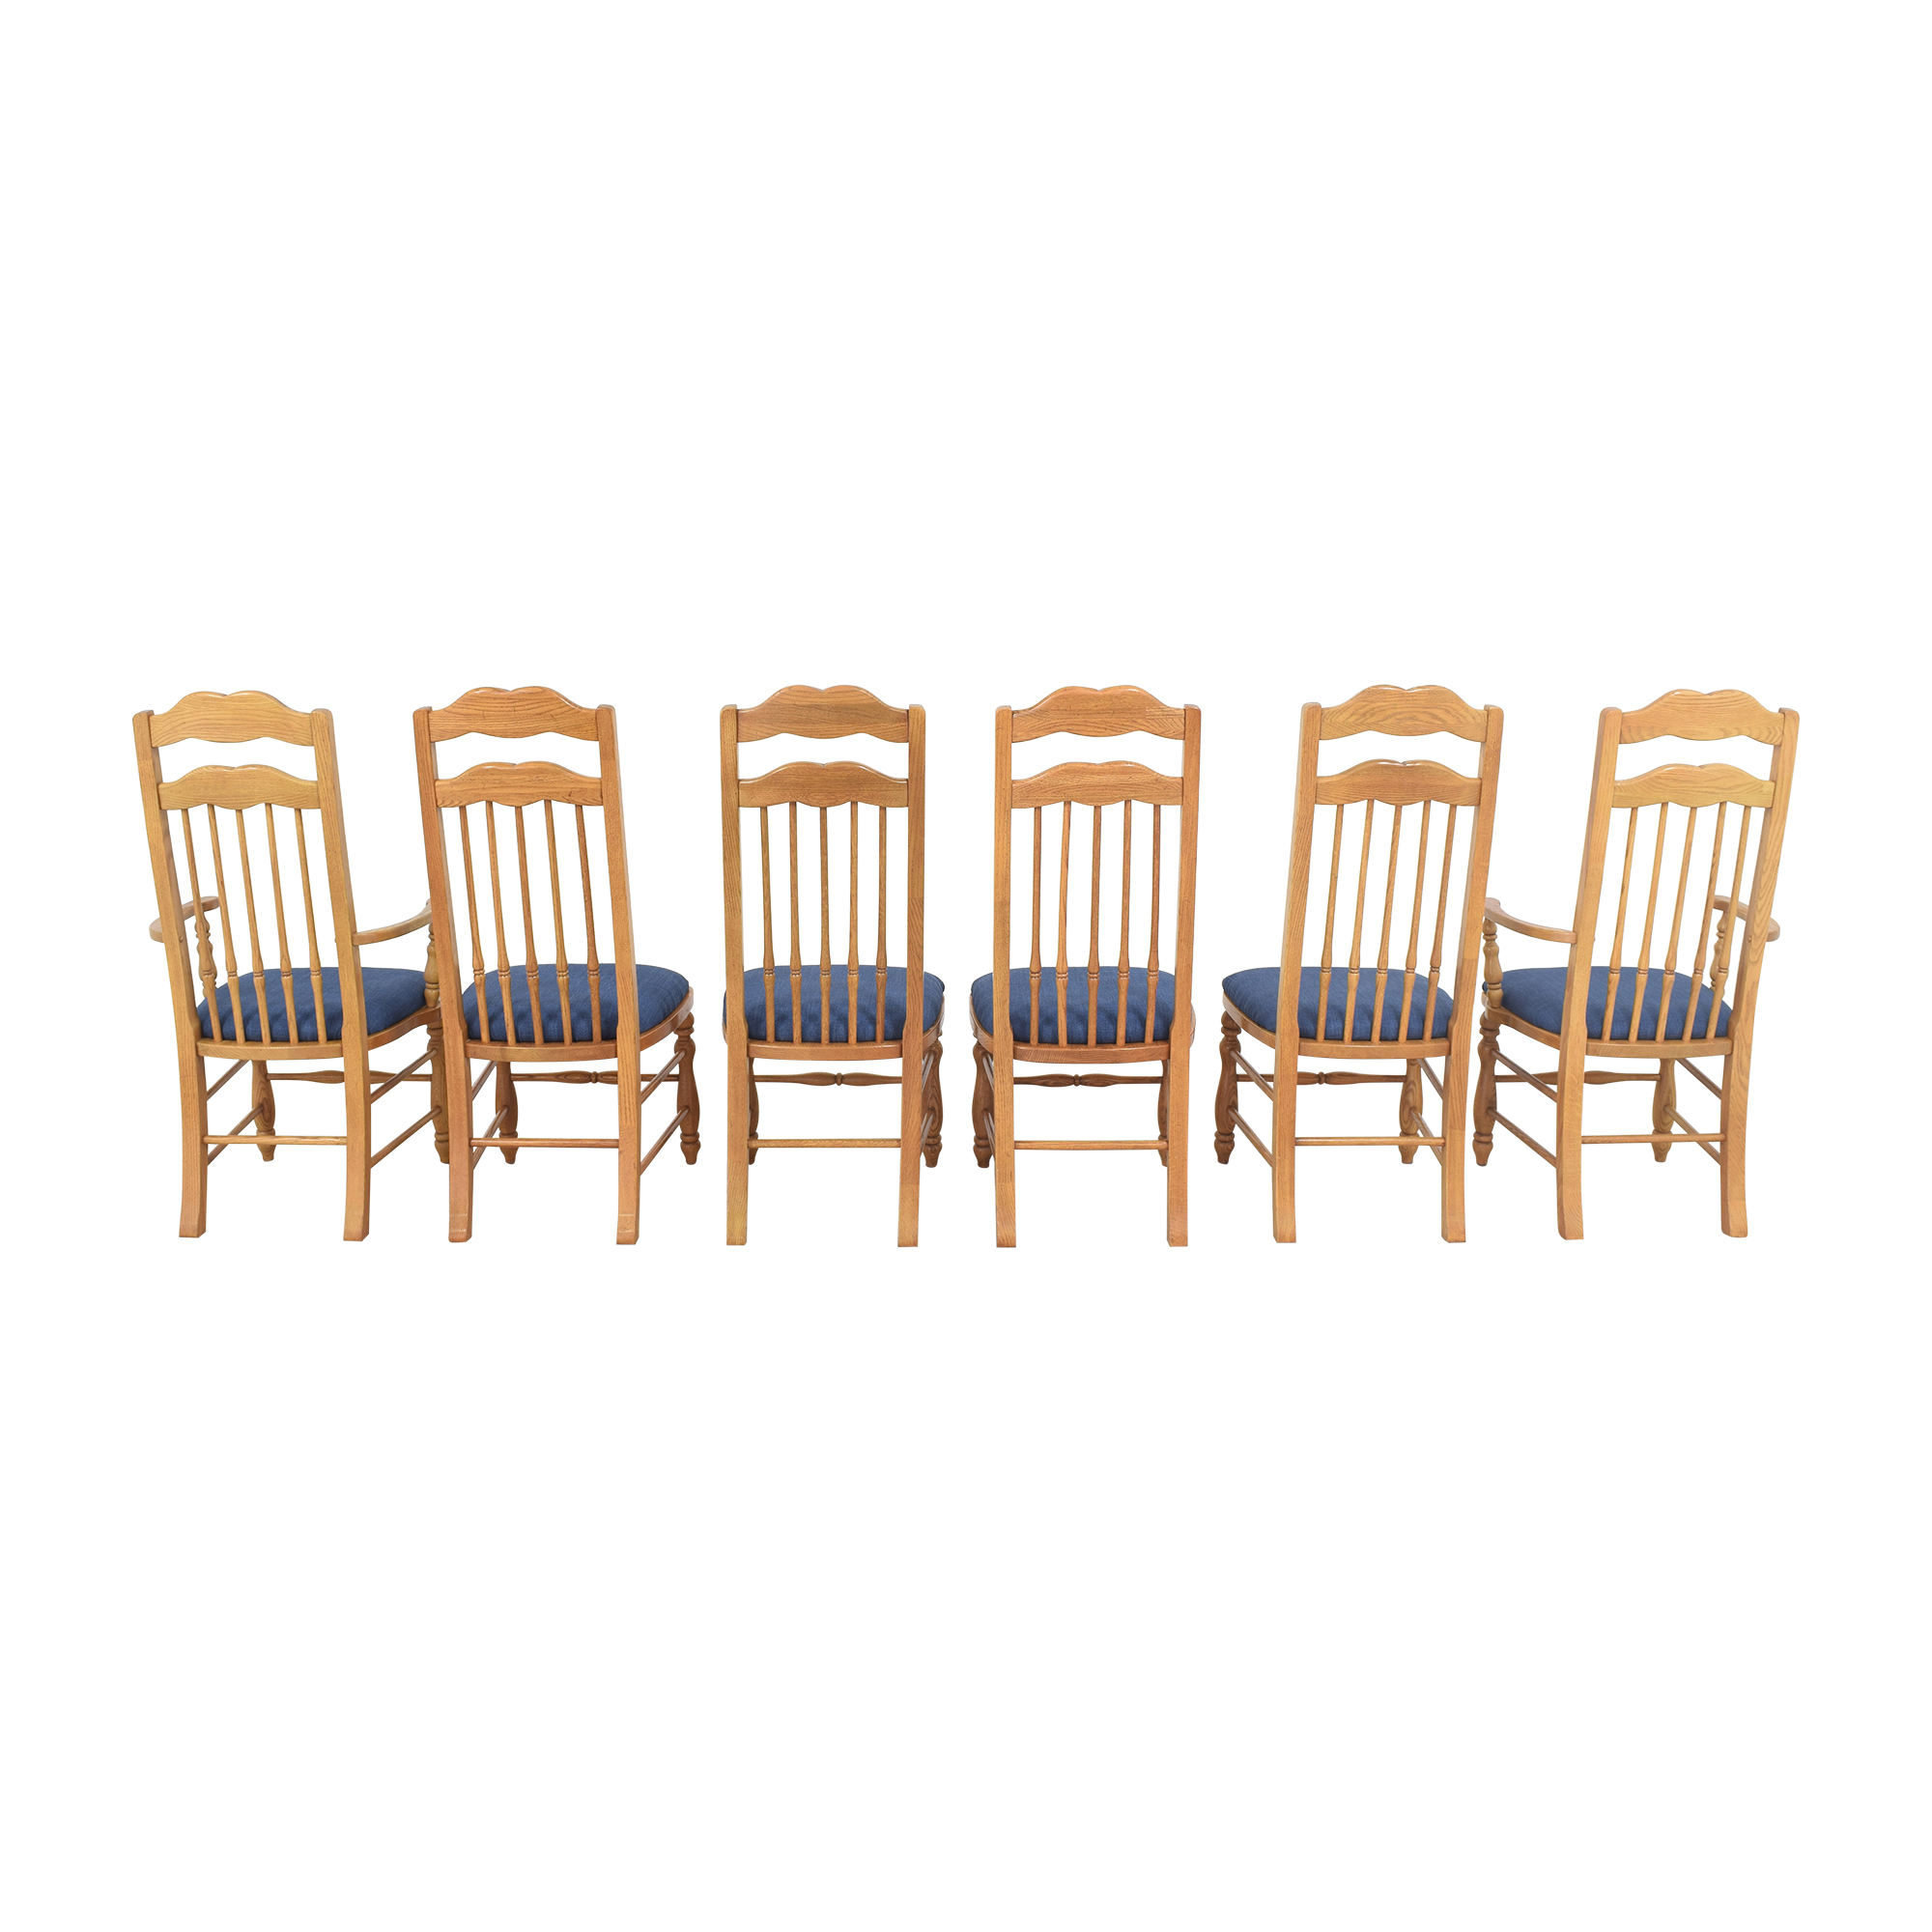 Thomasville Thomasville High Back Dining Chairs blue and light brown